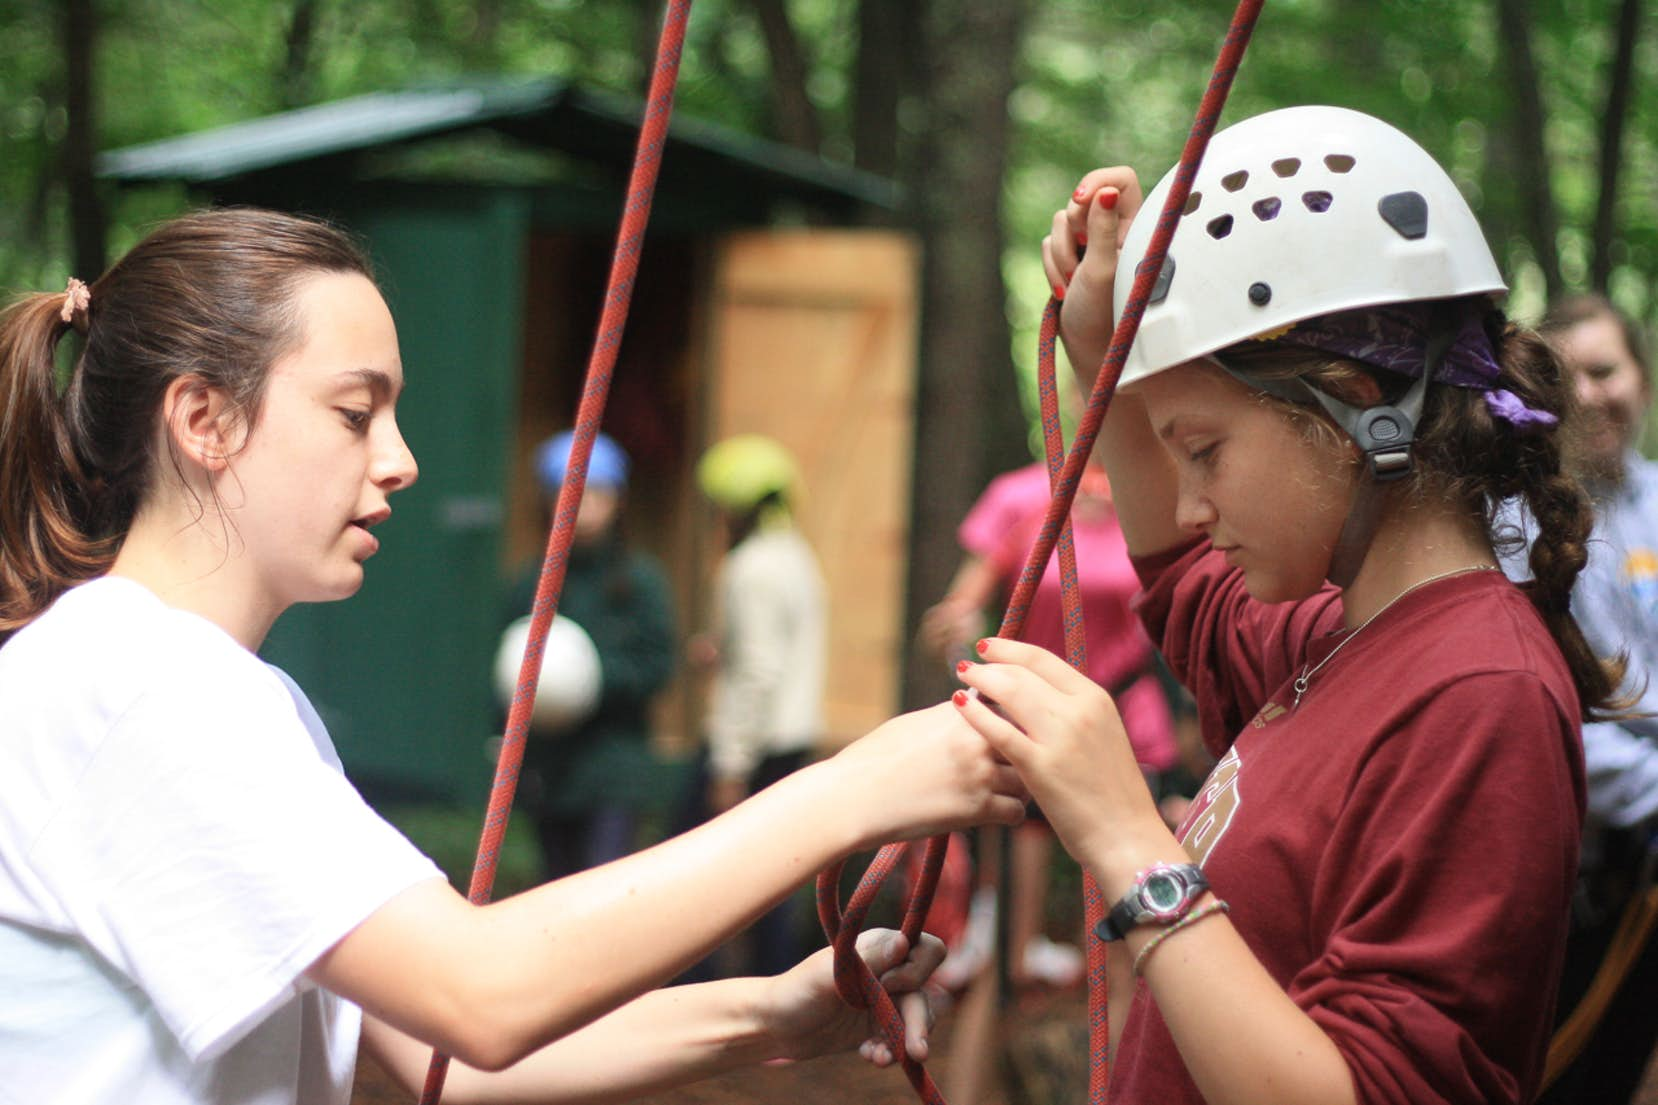 Summer Camp Jobs, for counselors at our girls adventure camp